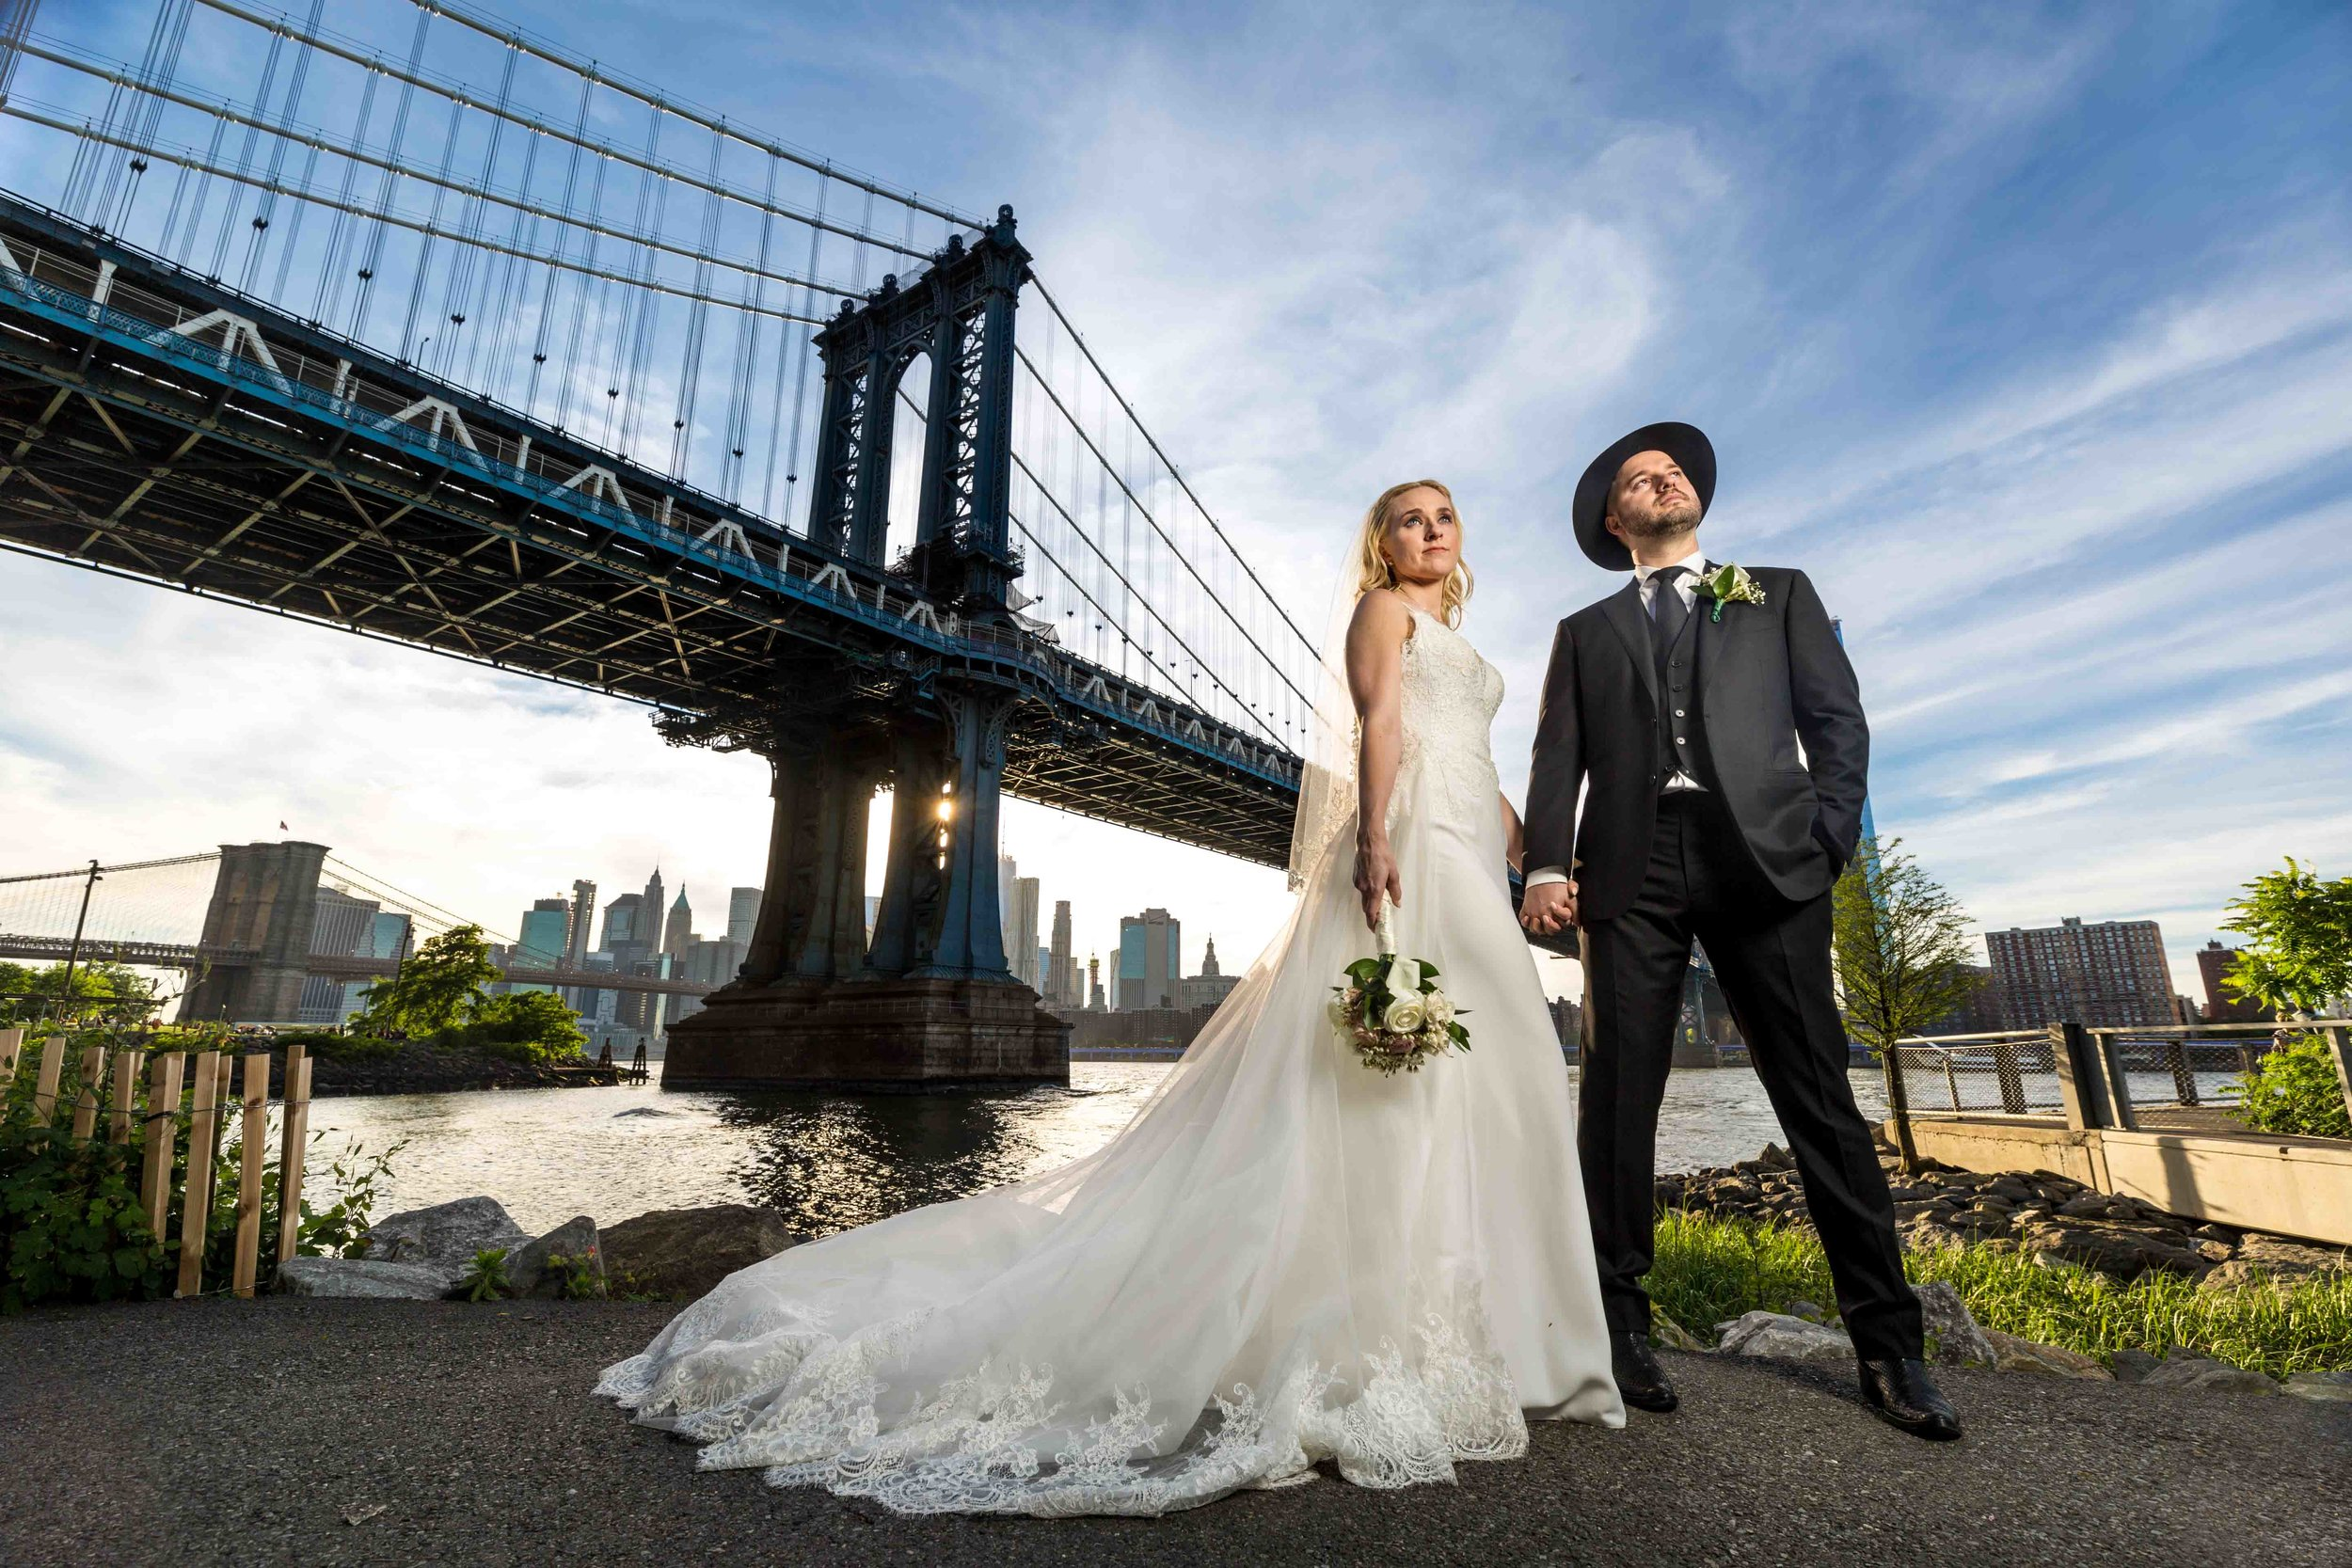 DUMBO Loft Wedding Brooklyn Bridge NYC New York City Photographer_62.jpg